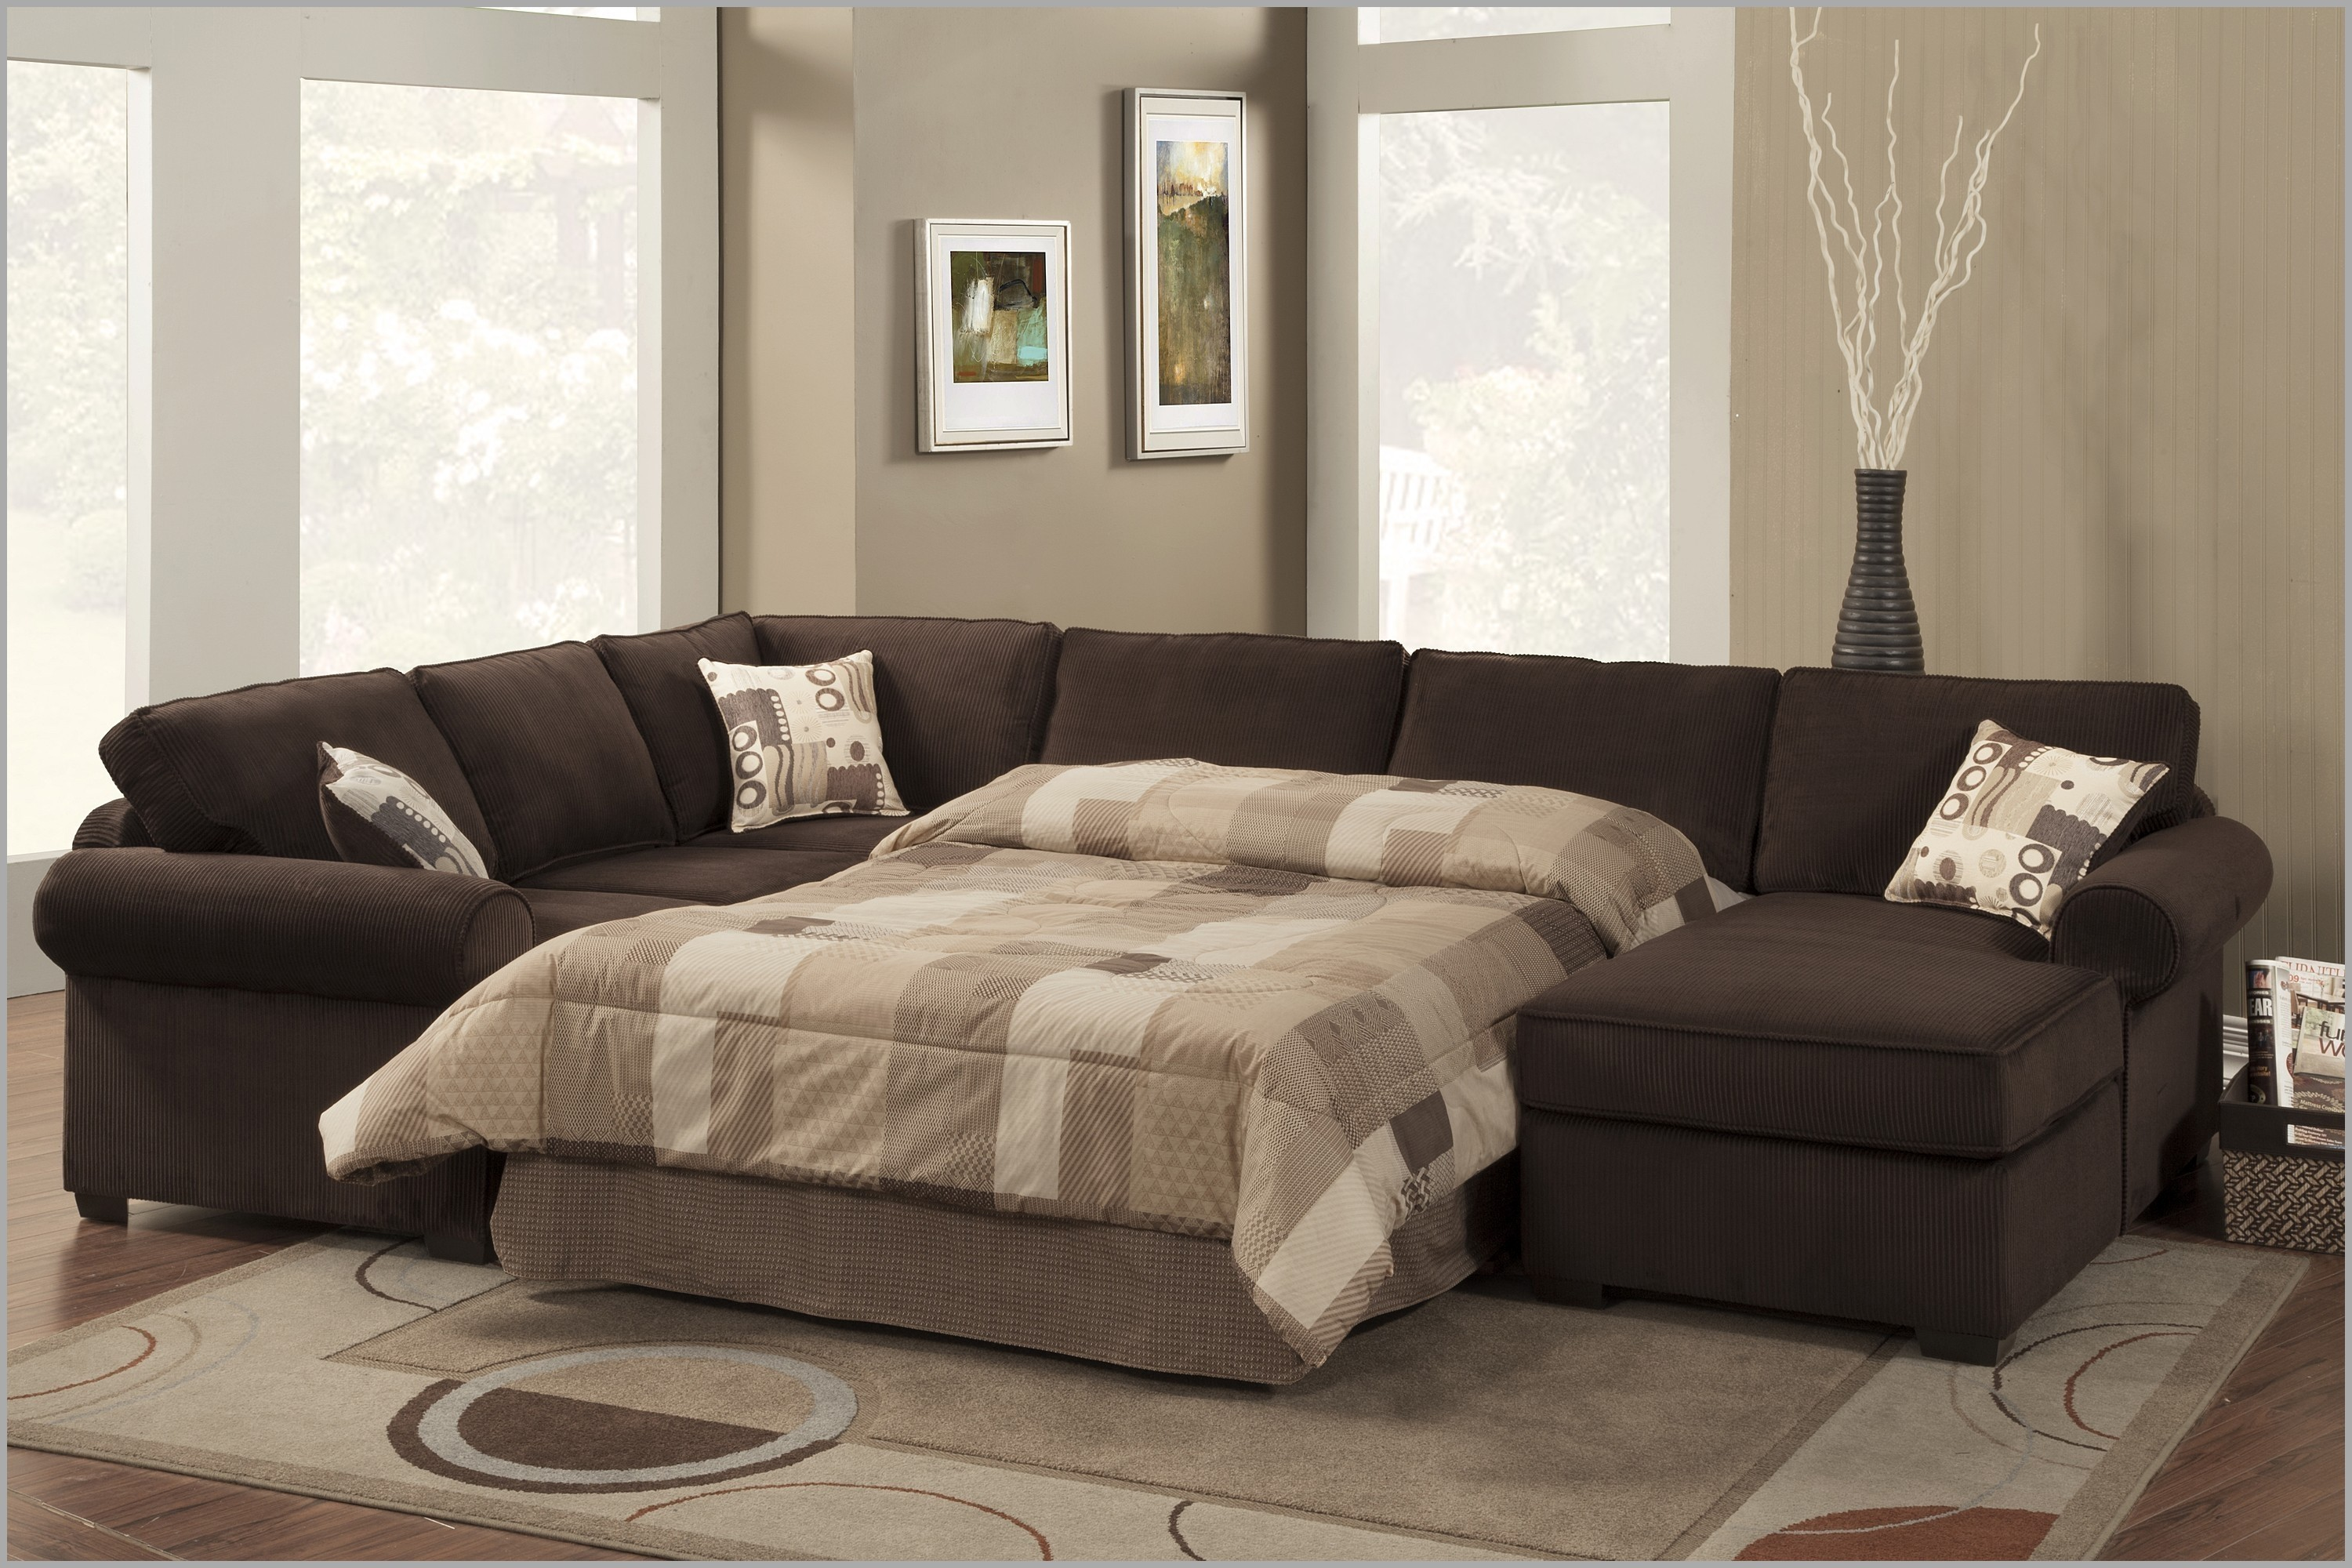 Sectional Sleeper sofas Amazing Best Sleeper sofa Sectional with Chaise Decoration sofa Ideas Wallpaper